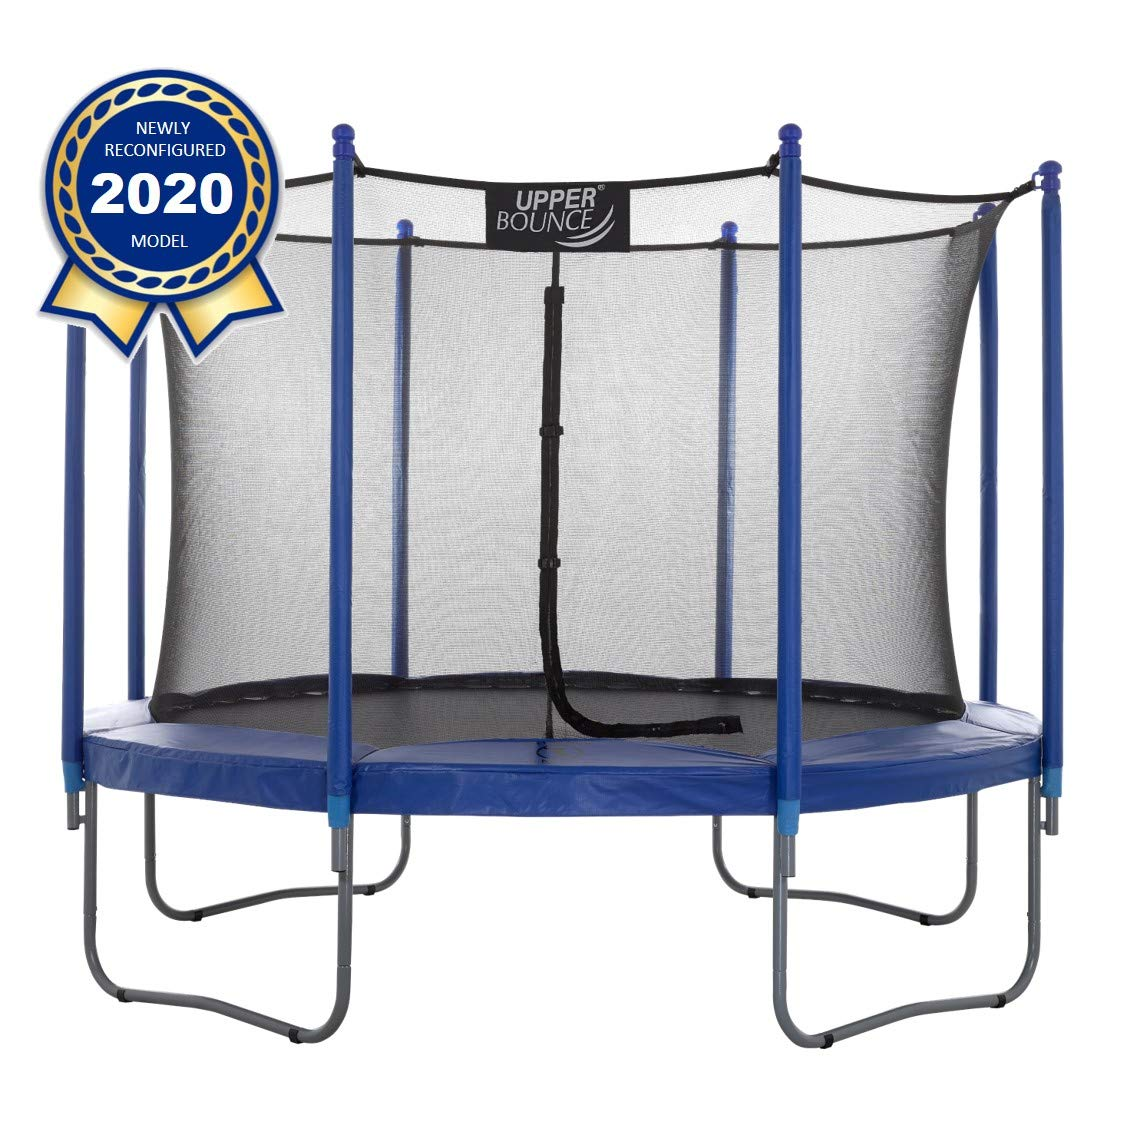 Upper Bounce Easy-to-Assemble Round Trampoline Set with Premium Jumping Mat & Safety Enclosure System | The #1 Best Outdoor Trampoline for Kids!